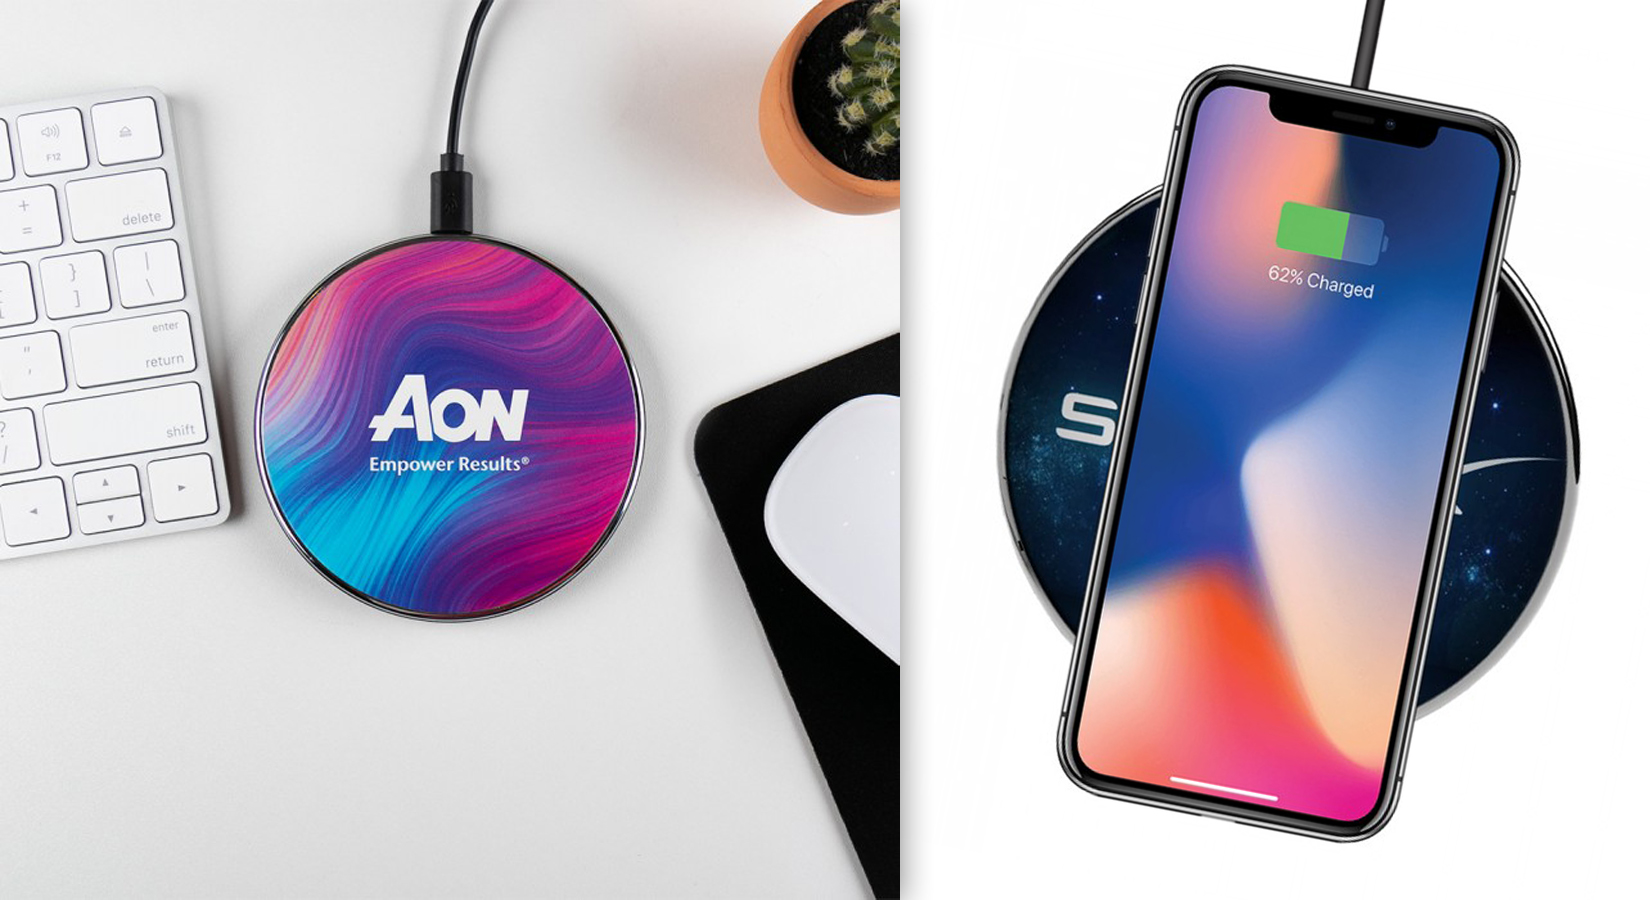 The ProCharge Wireless Charging Pad with Custom Full Color Design